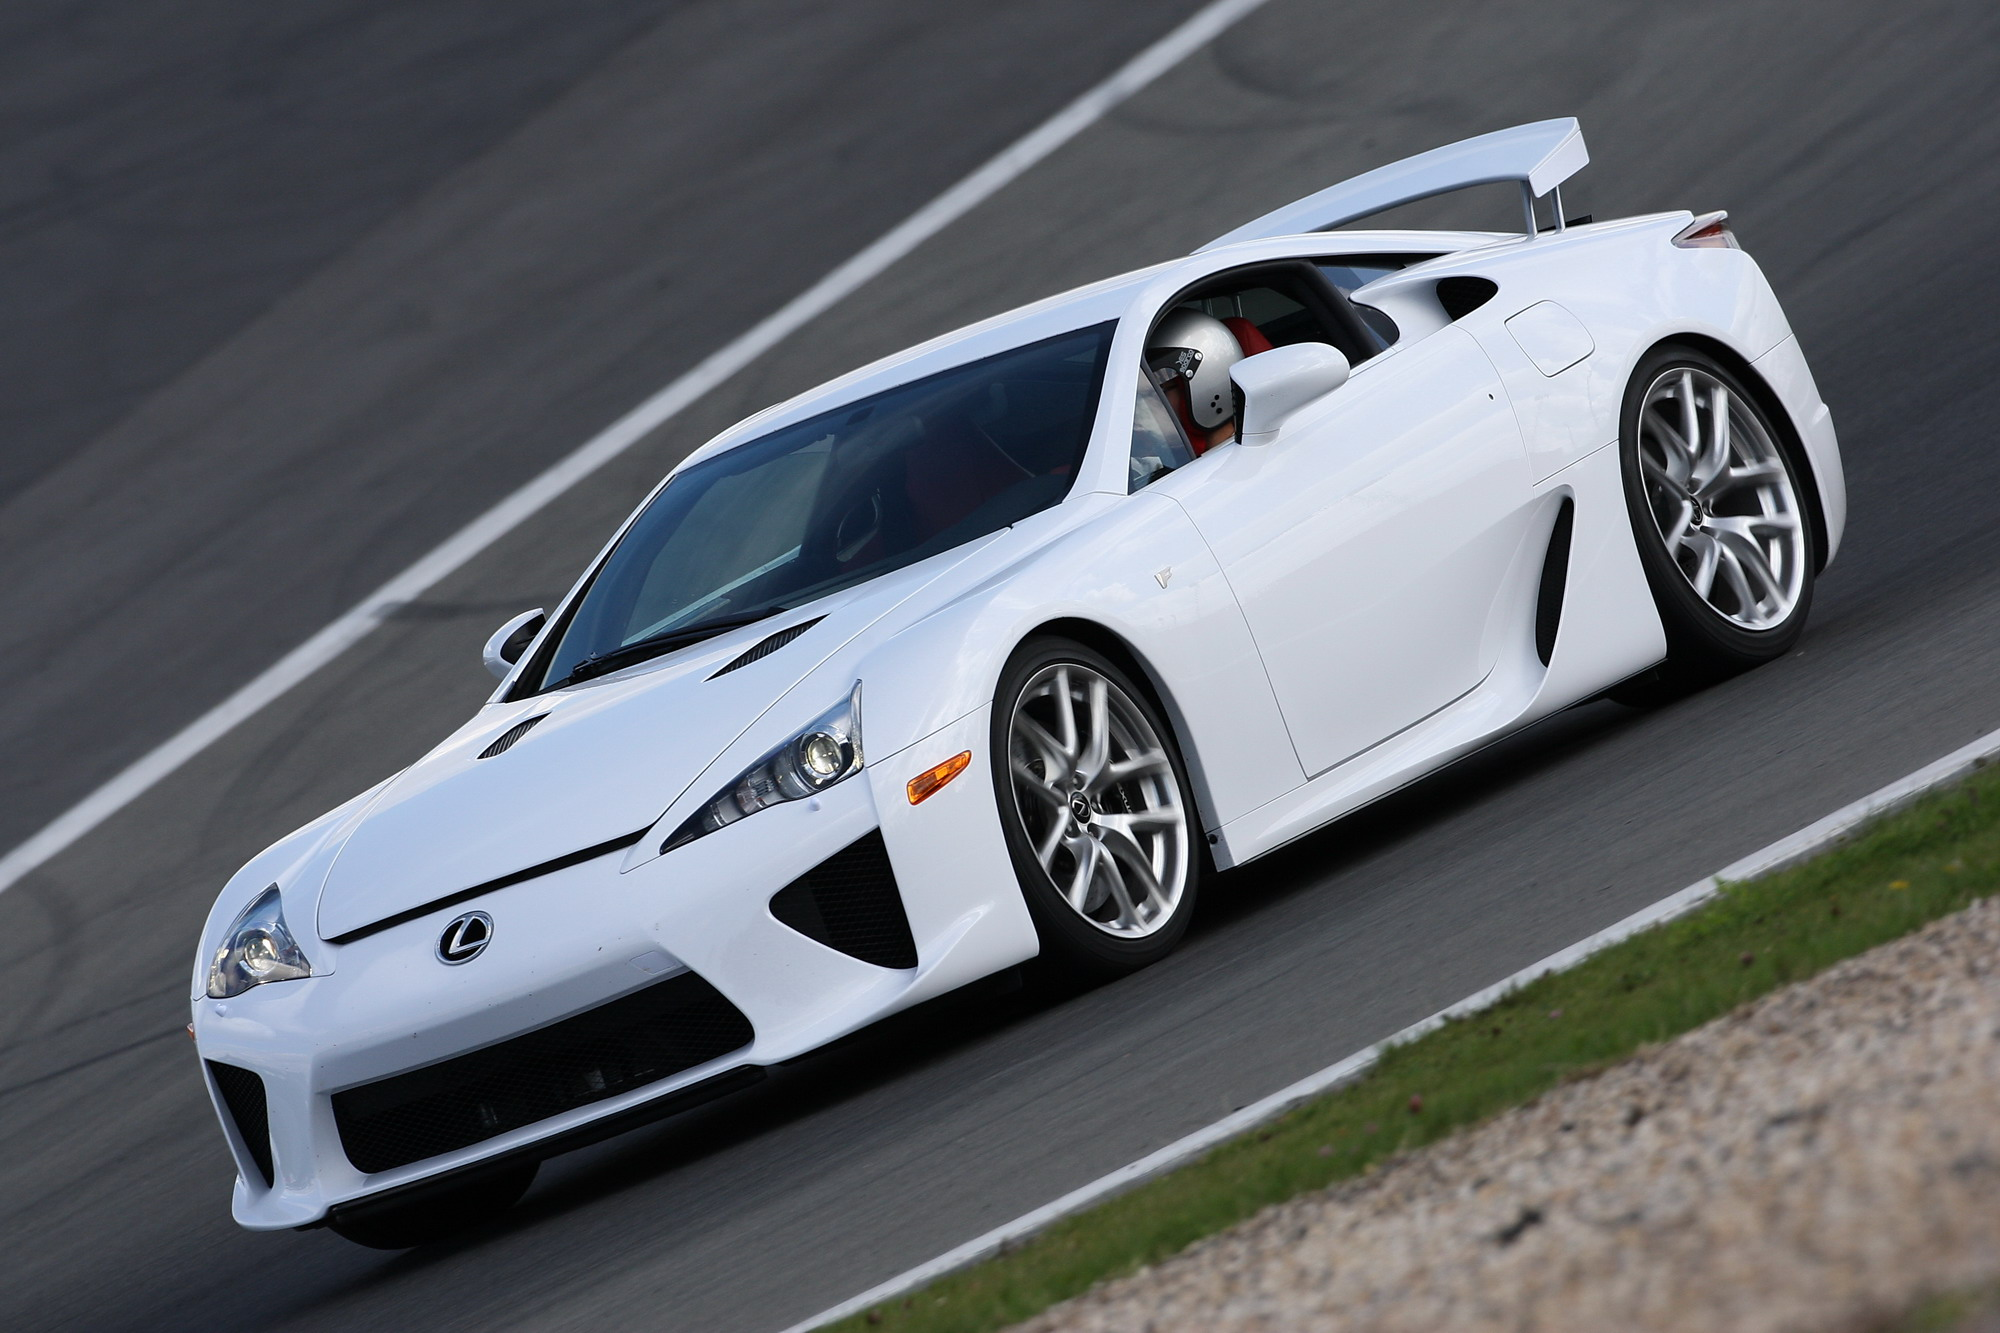 Money And Cars Wallpaper Lexus Lfa Supercar Priced At 375 000 Top Speed